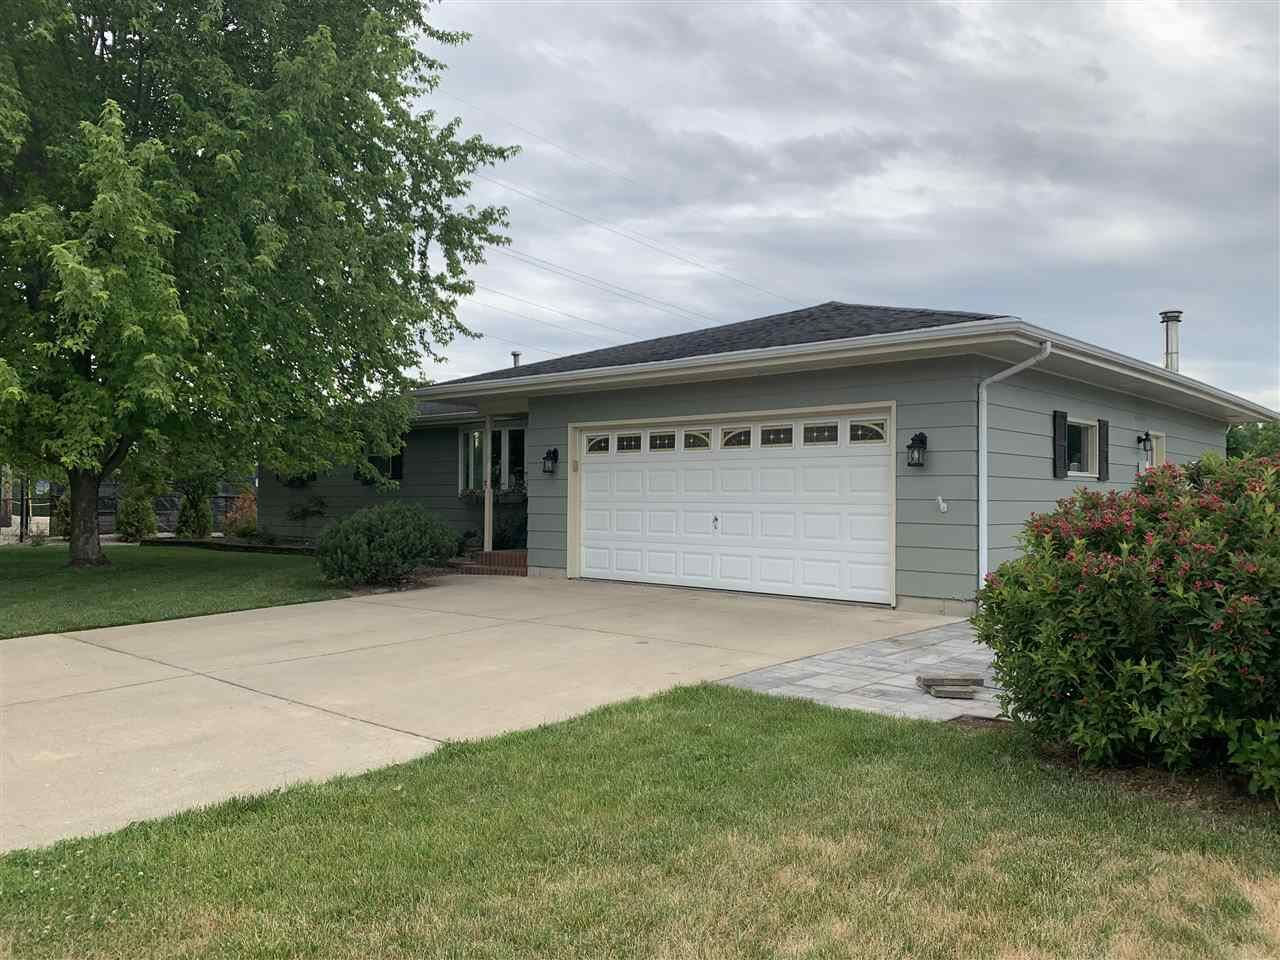 2621 Mineral Point Ave., Janesville, WI 53545 - #: 1912425